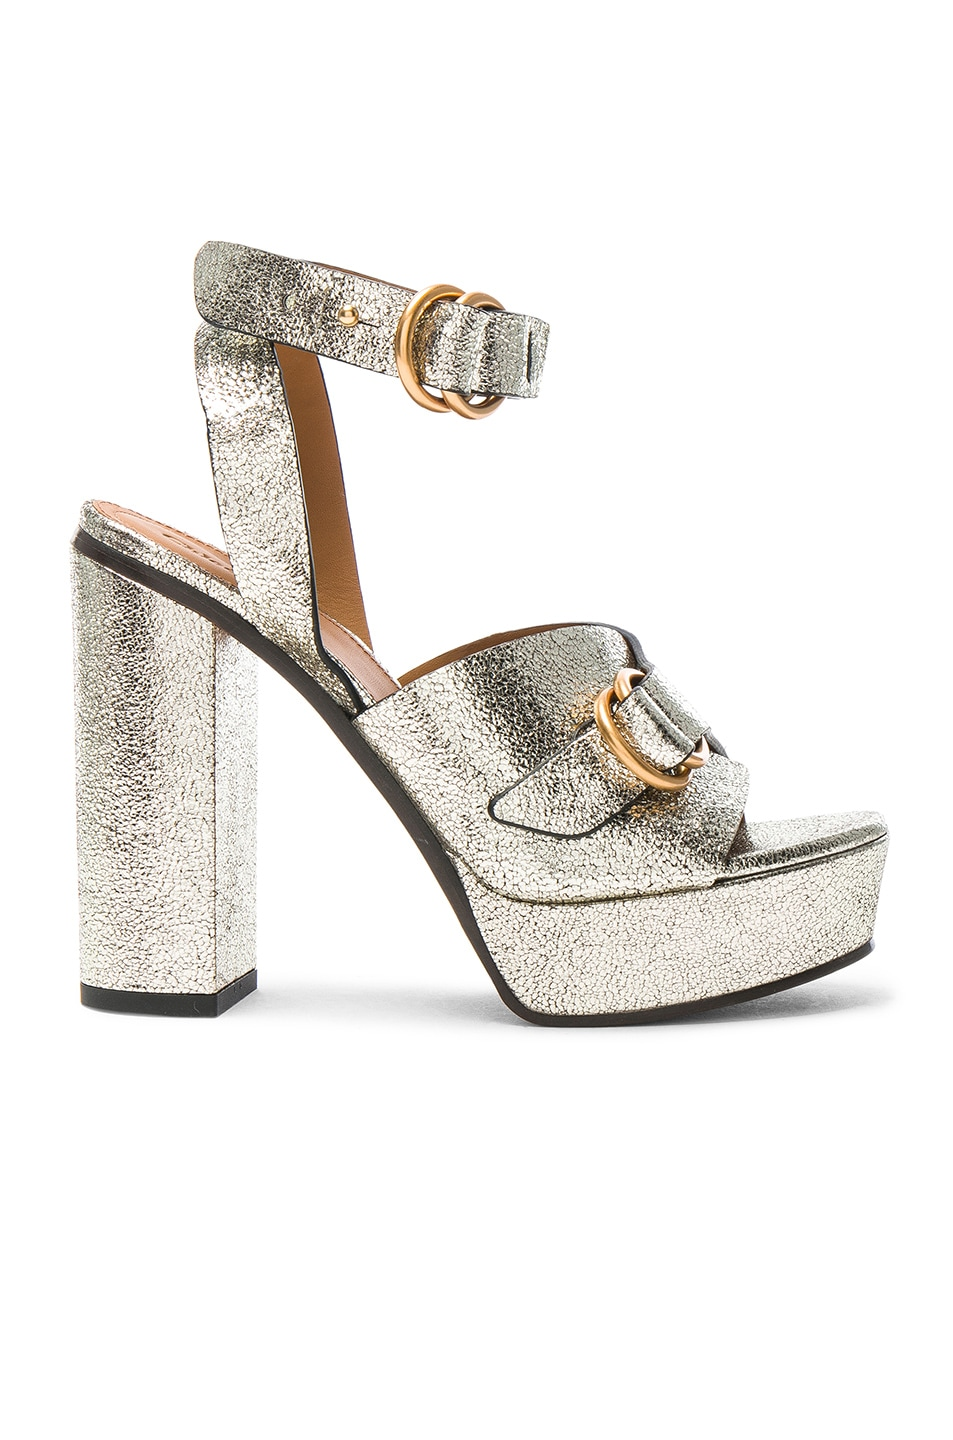 Image 1 of Chloe Cracked Leather Kingsley Sandals in Gray Glitter